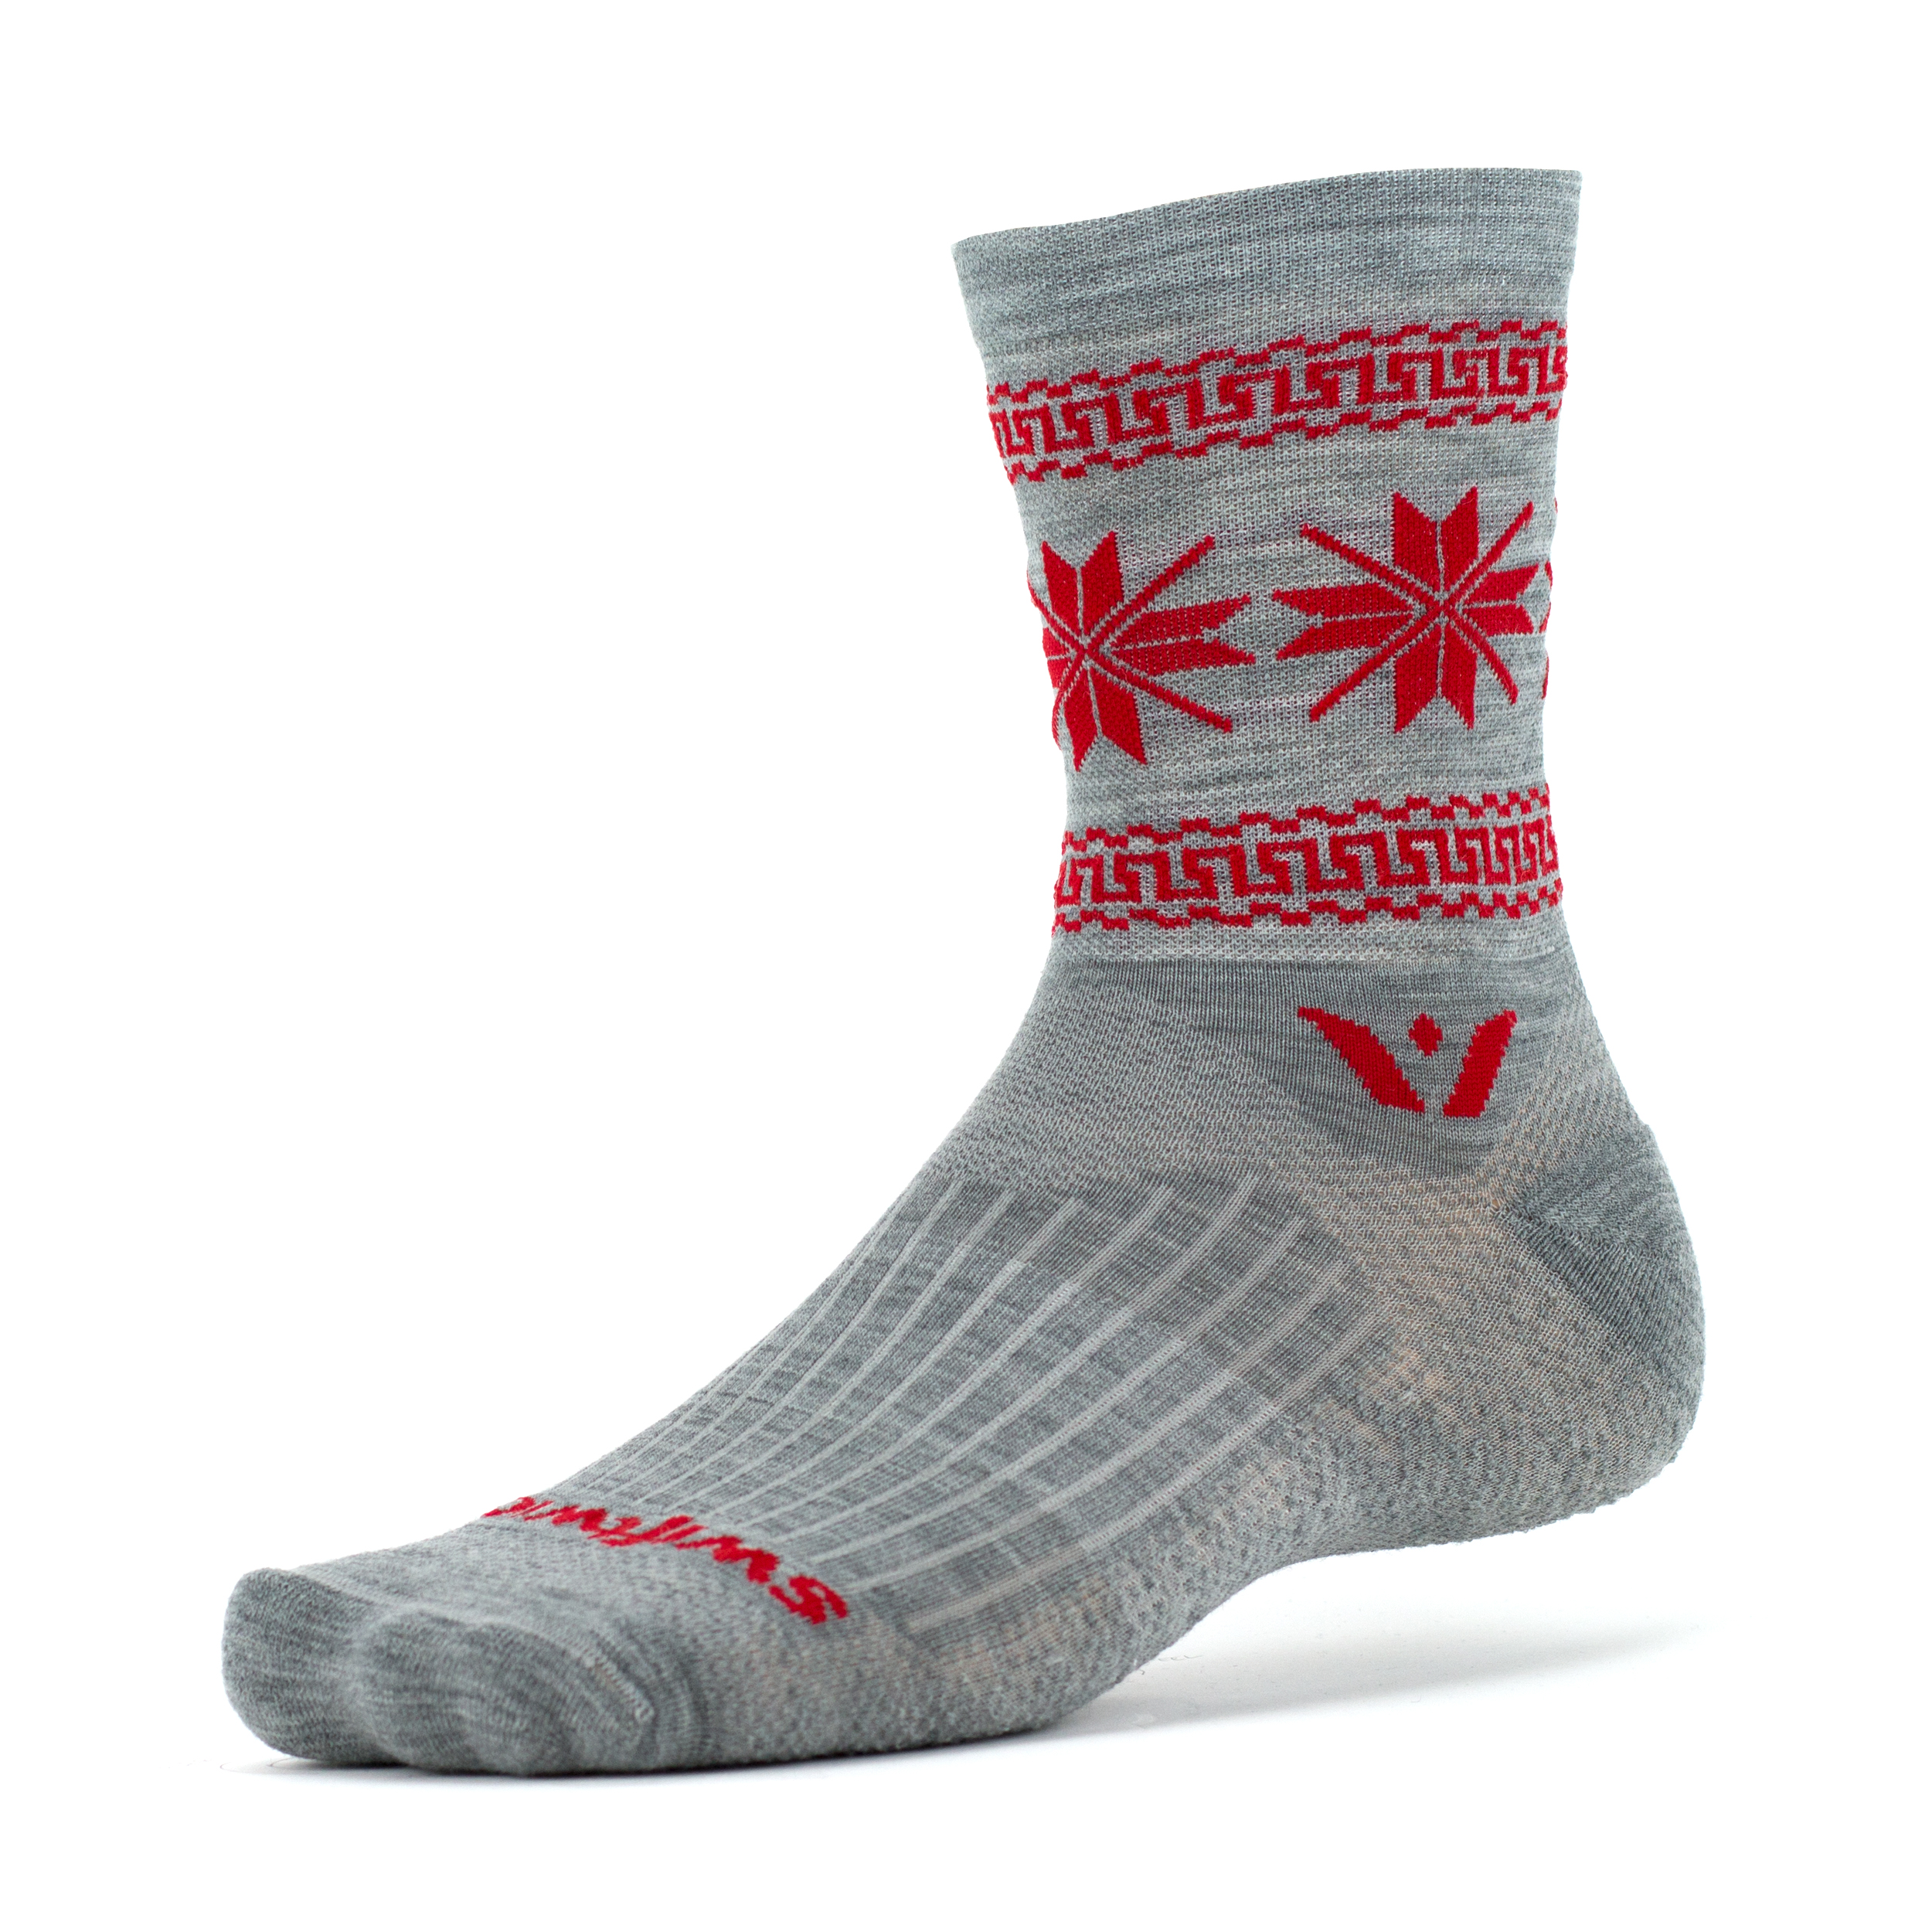 vision-winter-collection-heather-red-crew-socks-5-profile-5en90zz (2).jpg